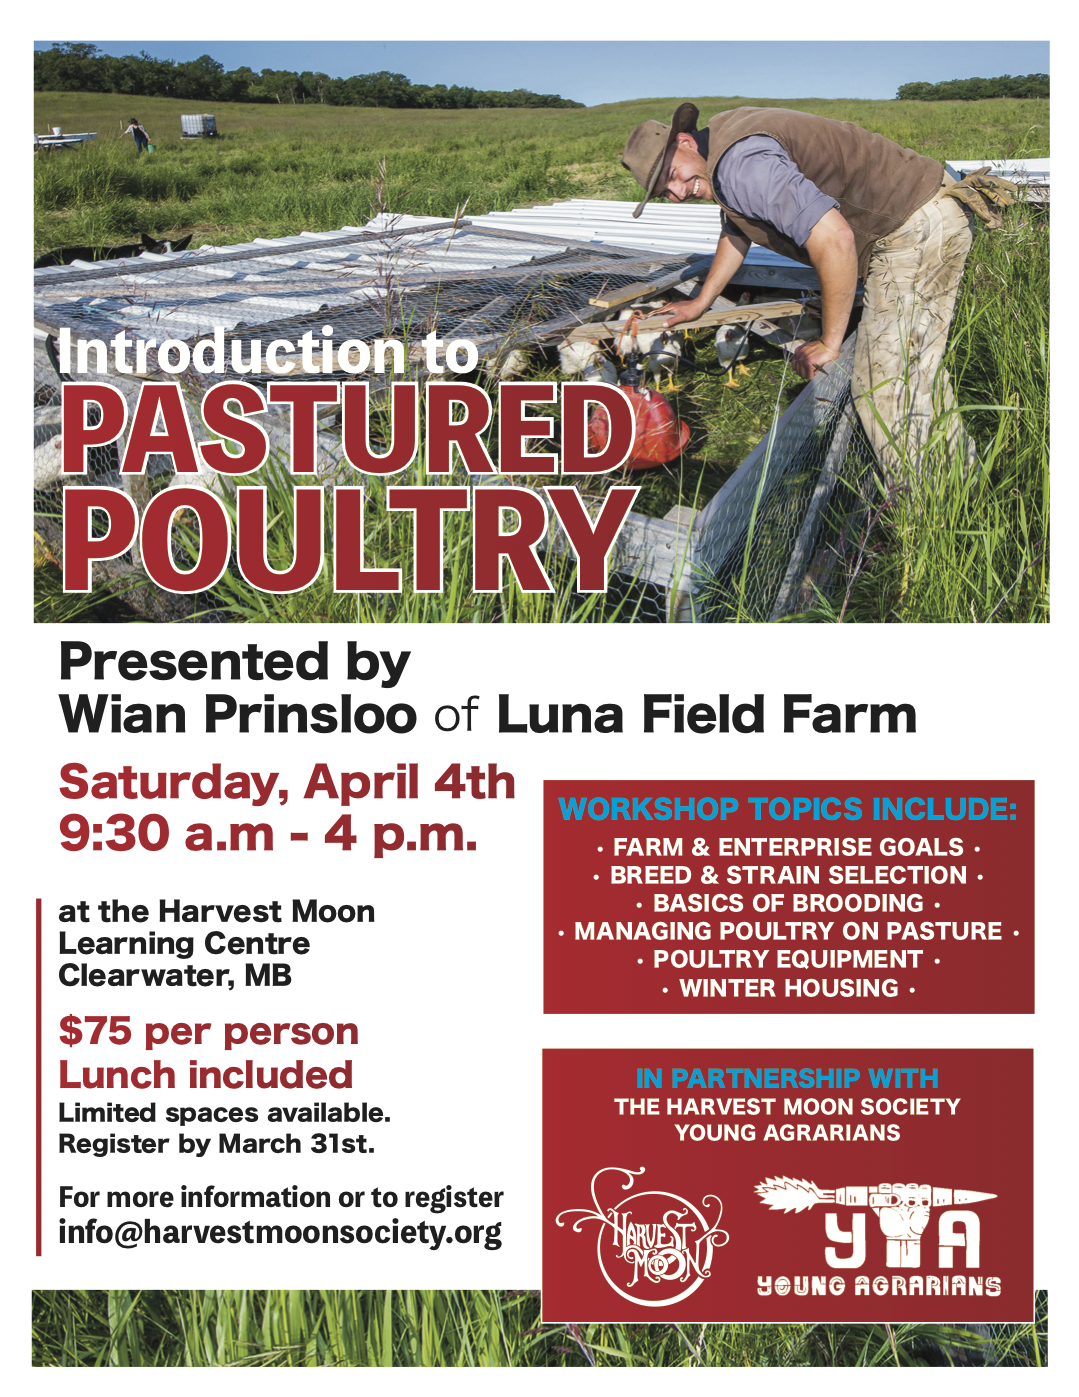 Pastured Poultry, clearwater, manitoba, workshop, young agrarians, luna field farm